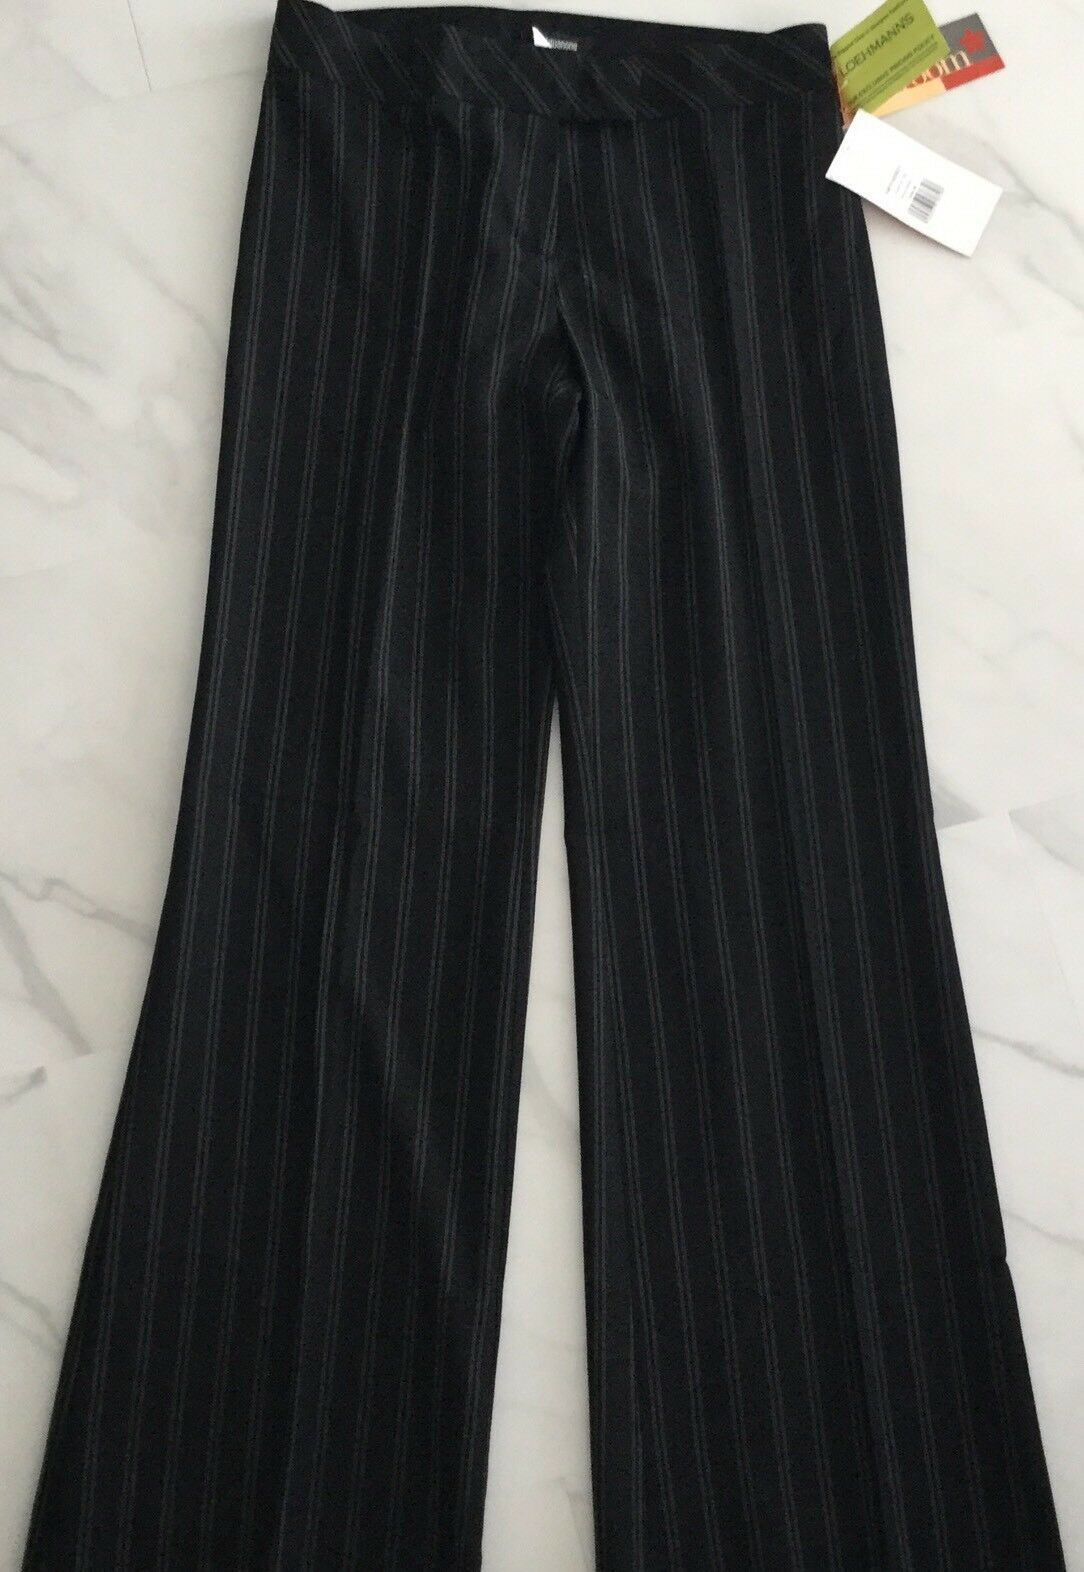 New Sinequanone Women Dress Striped  Pants Size France